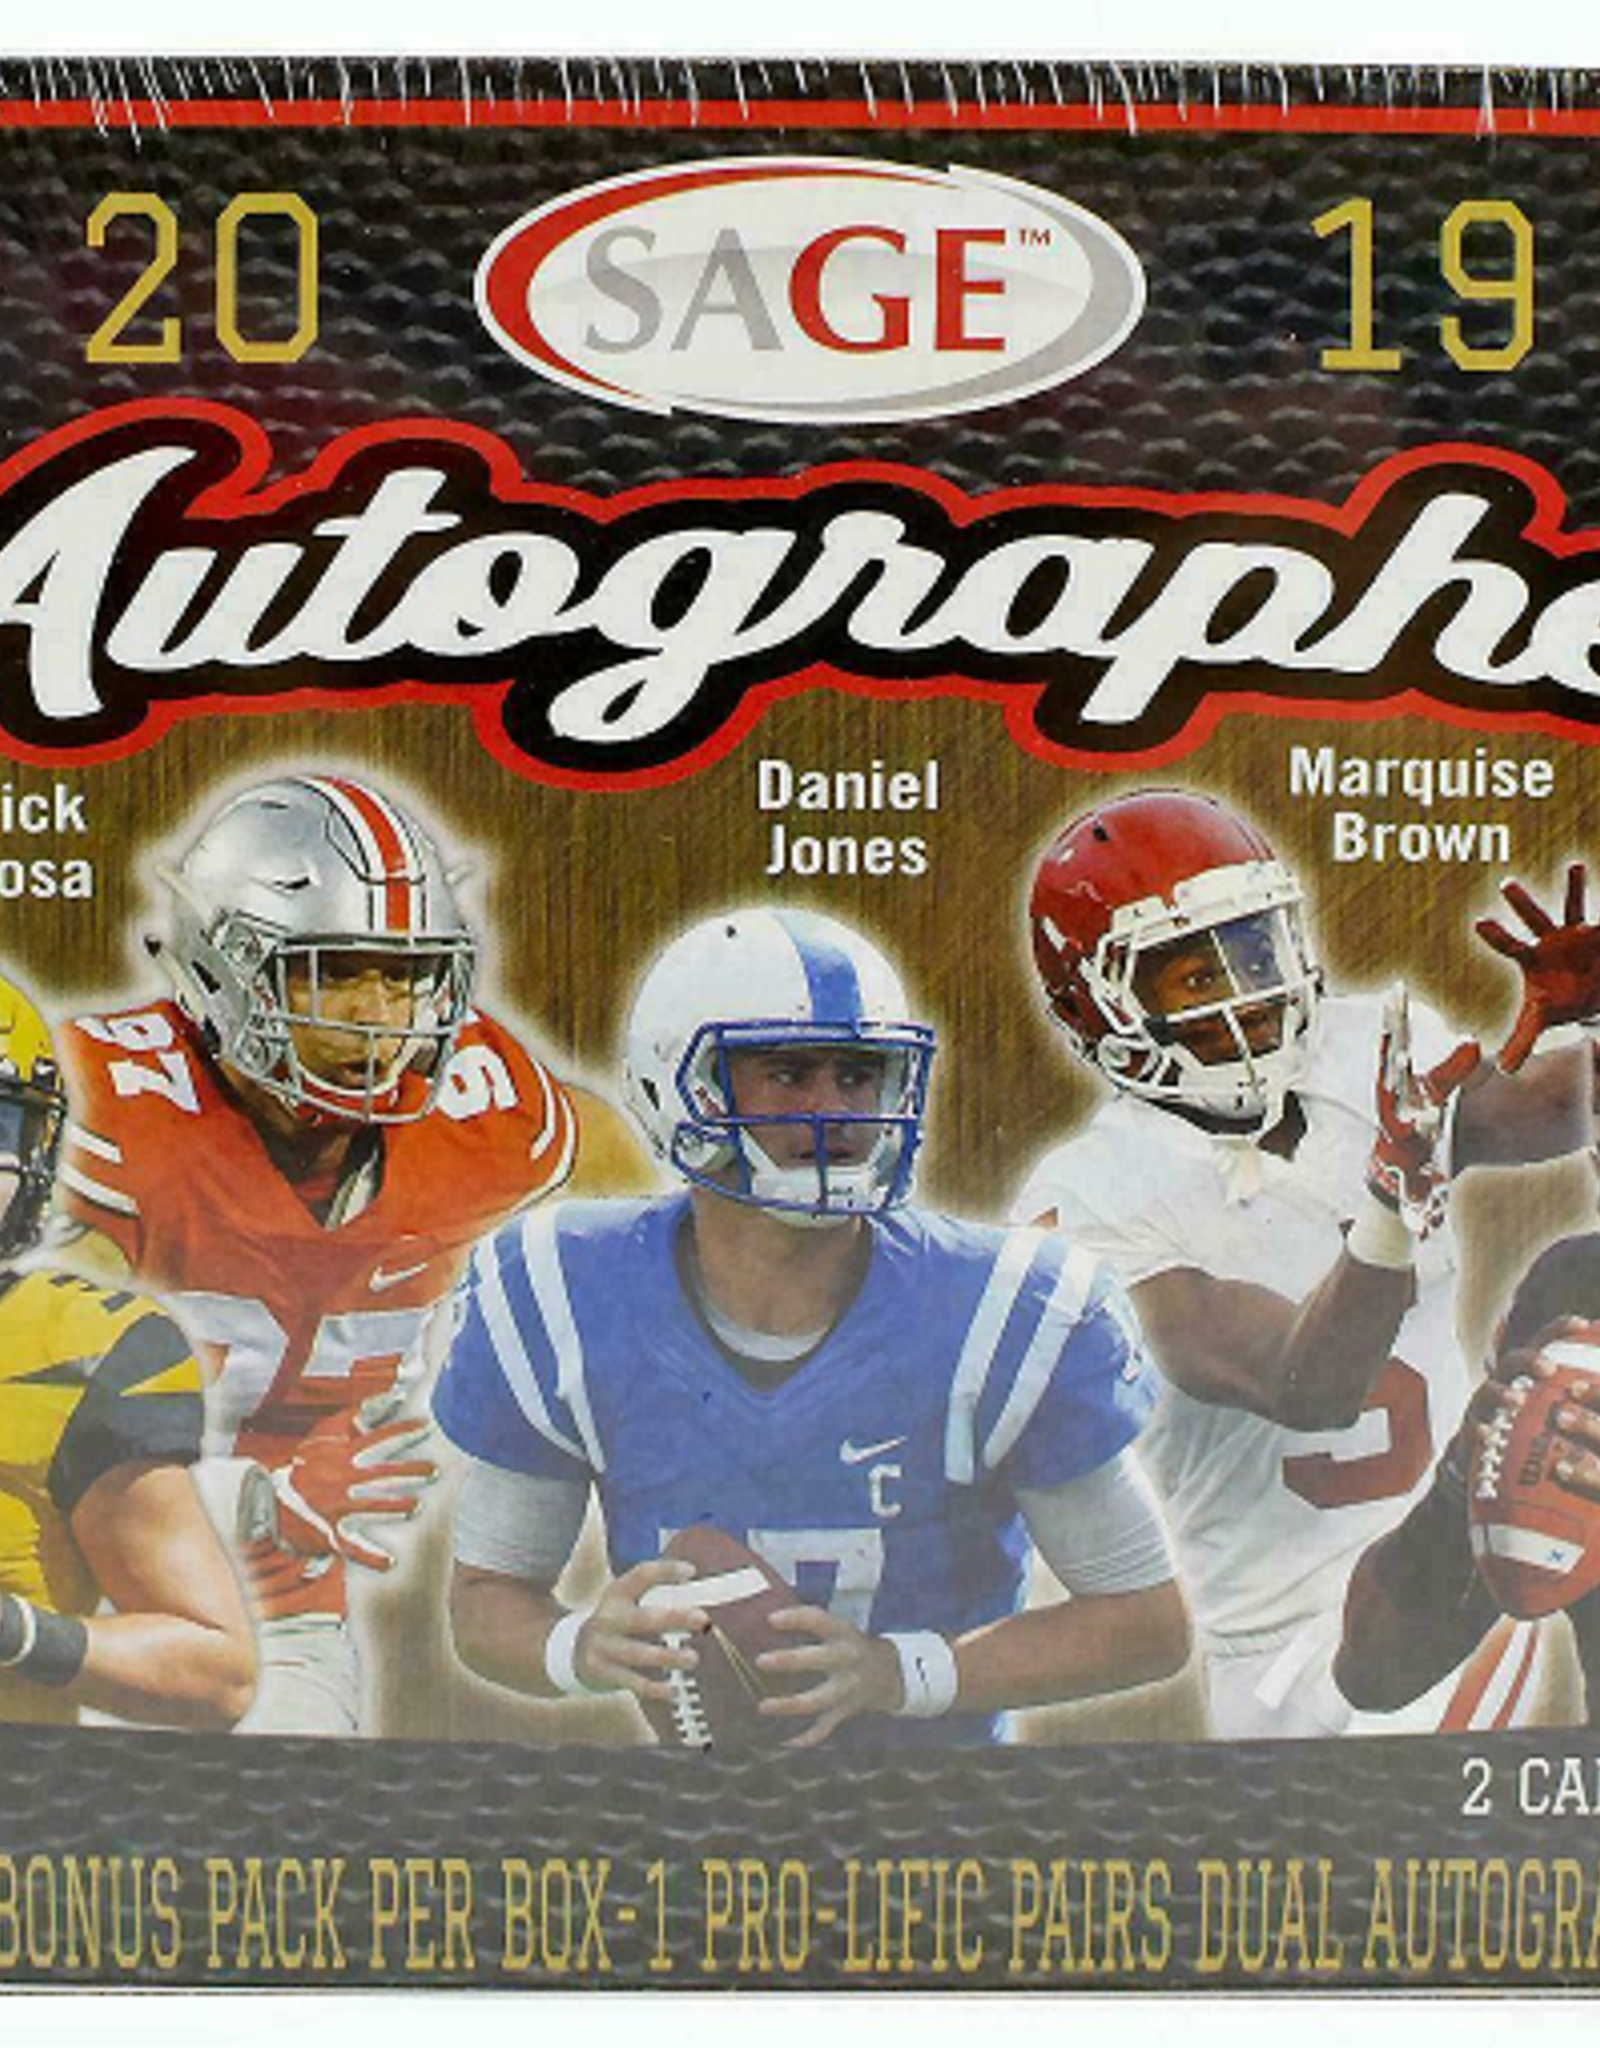 SAGE Collectibles 2019 SAGE Autographed Football Sealed Box